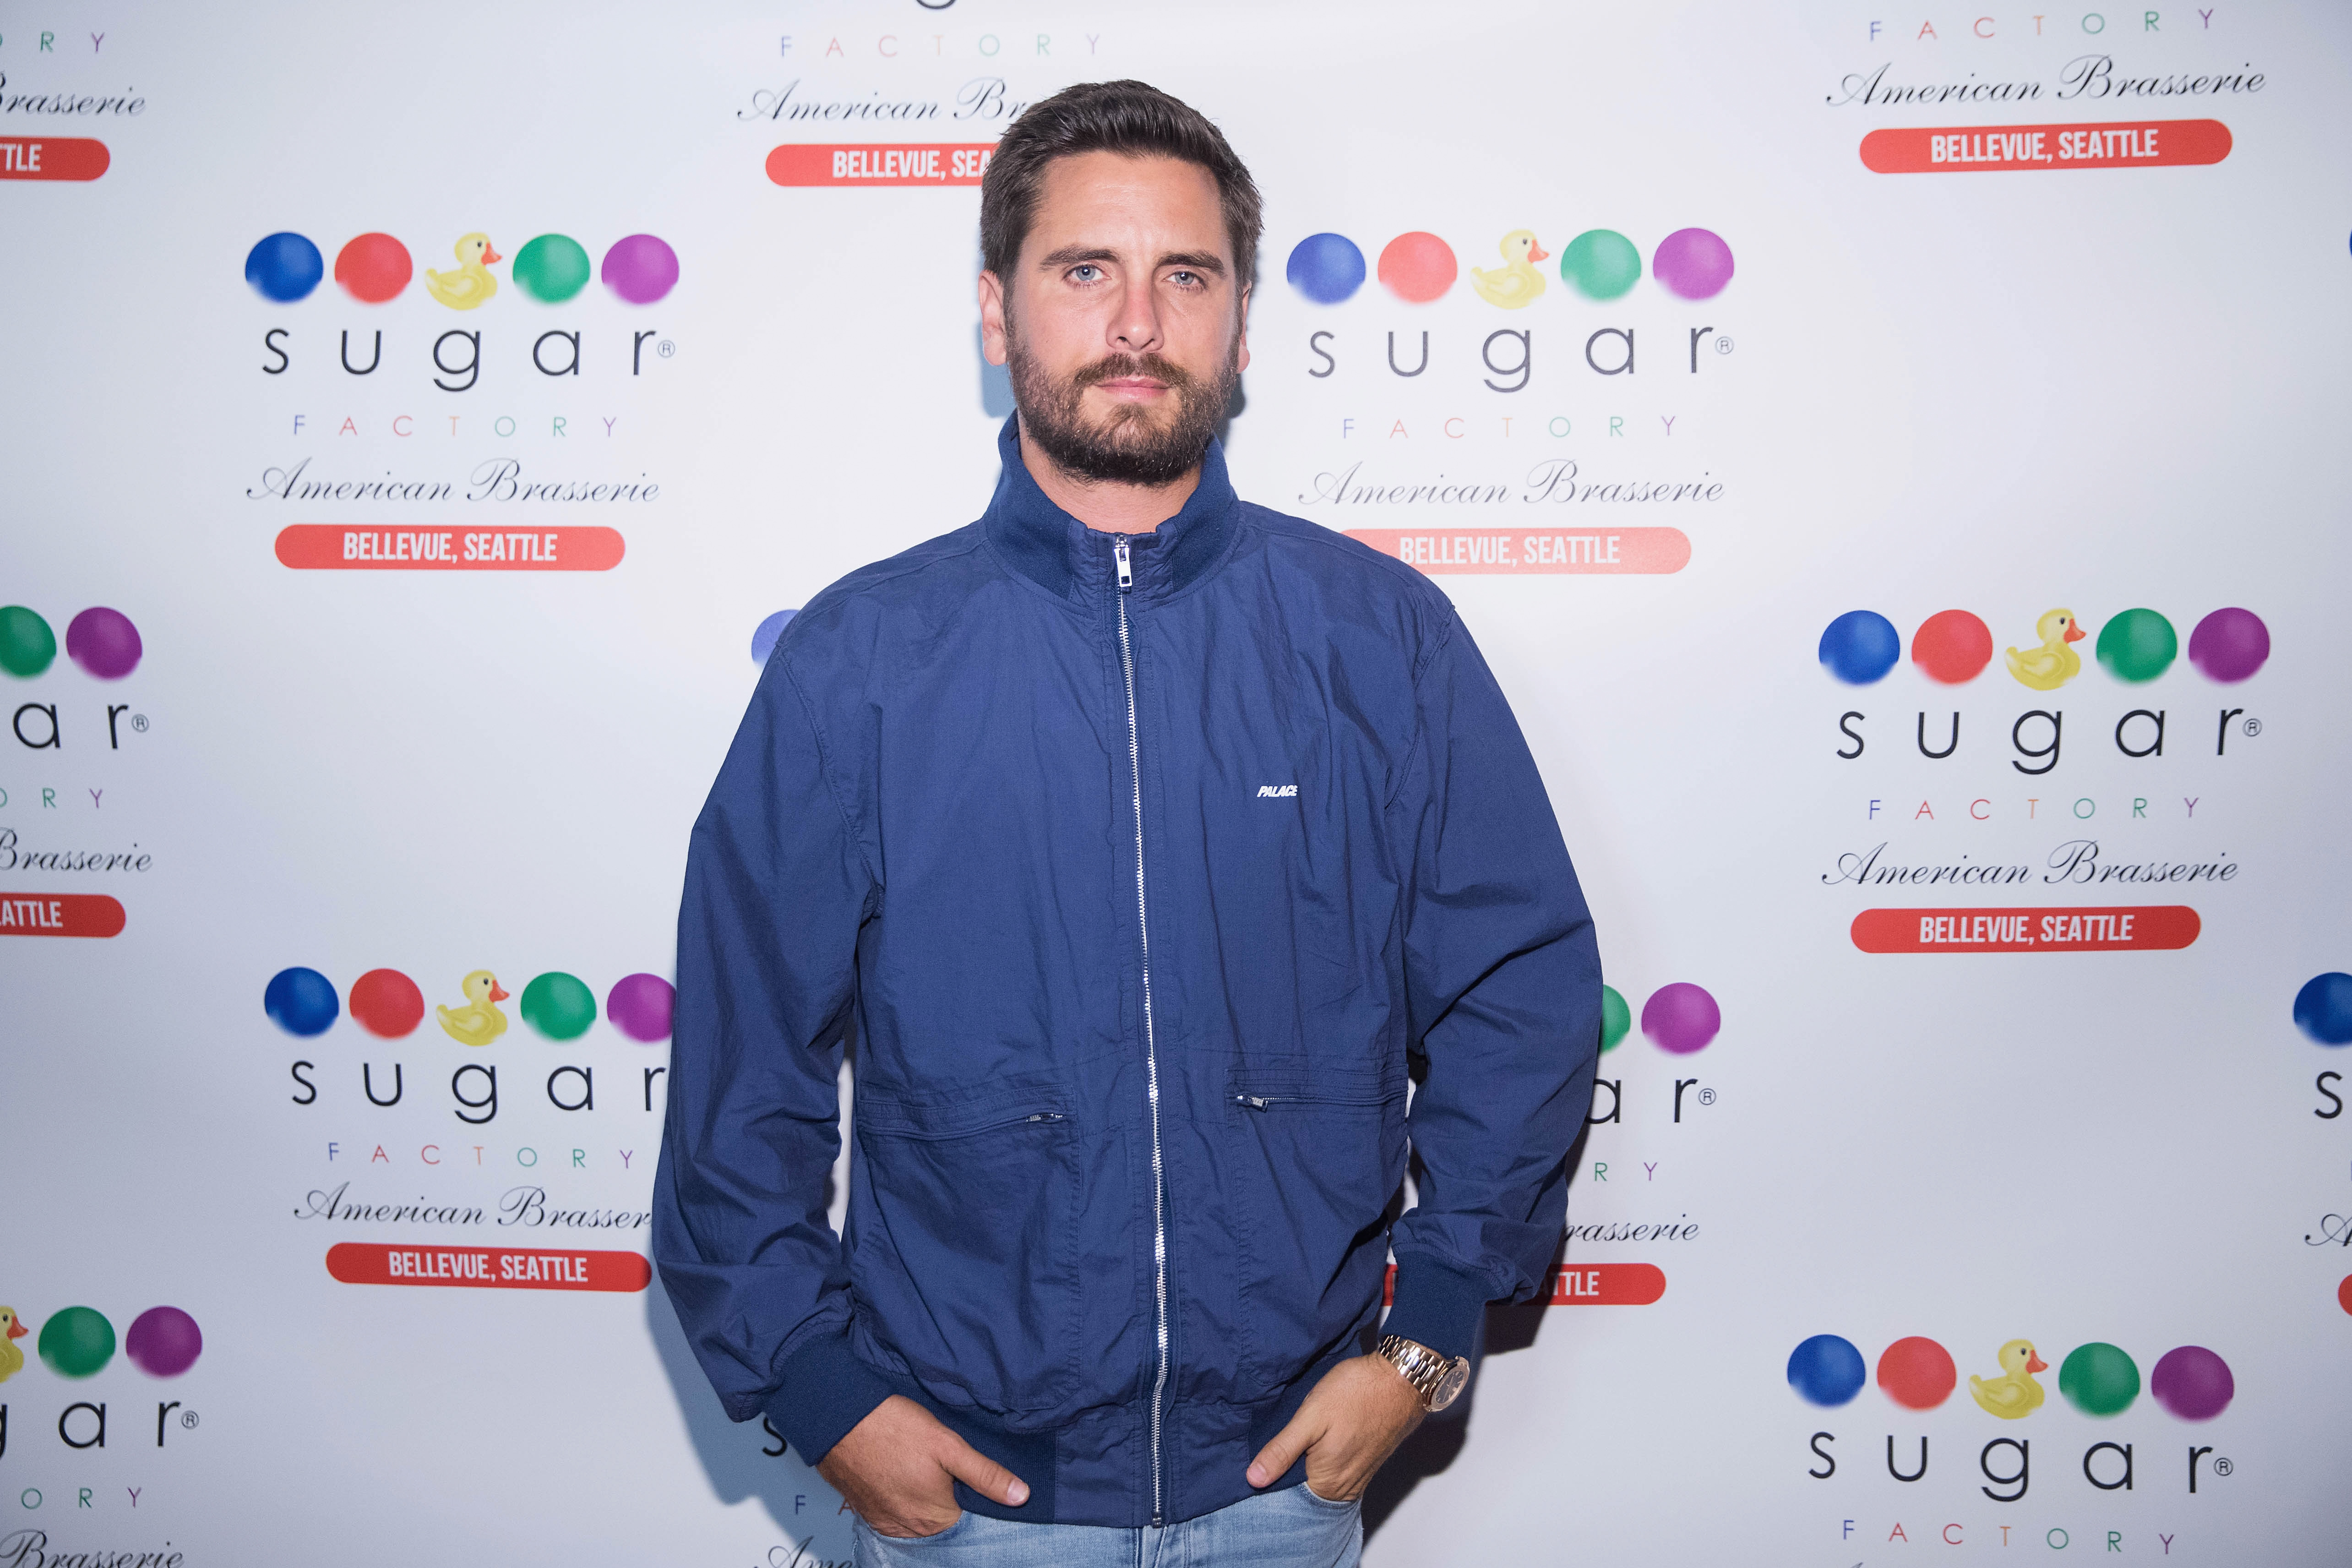 Scott Disick Sought Treatment For Grief, Not Substance Abuse, Attorney Says